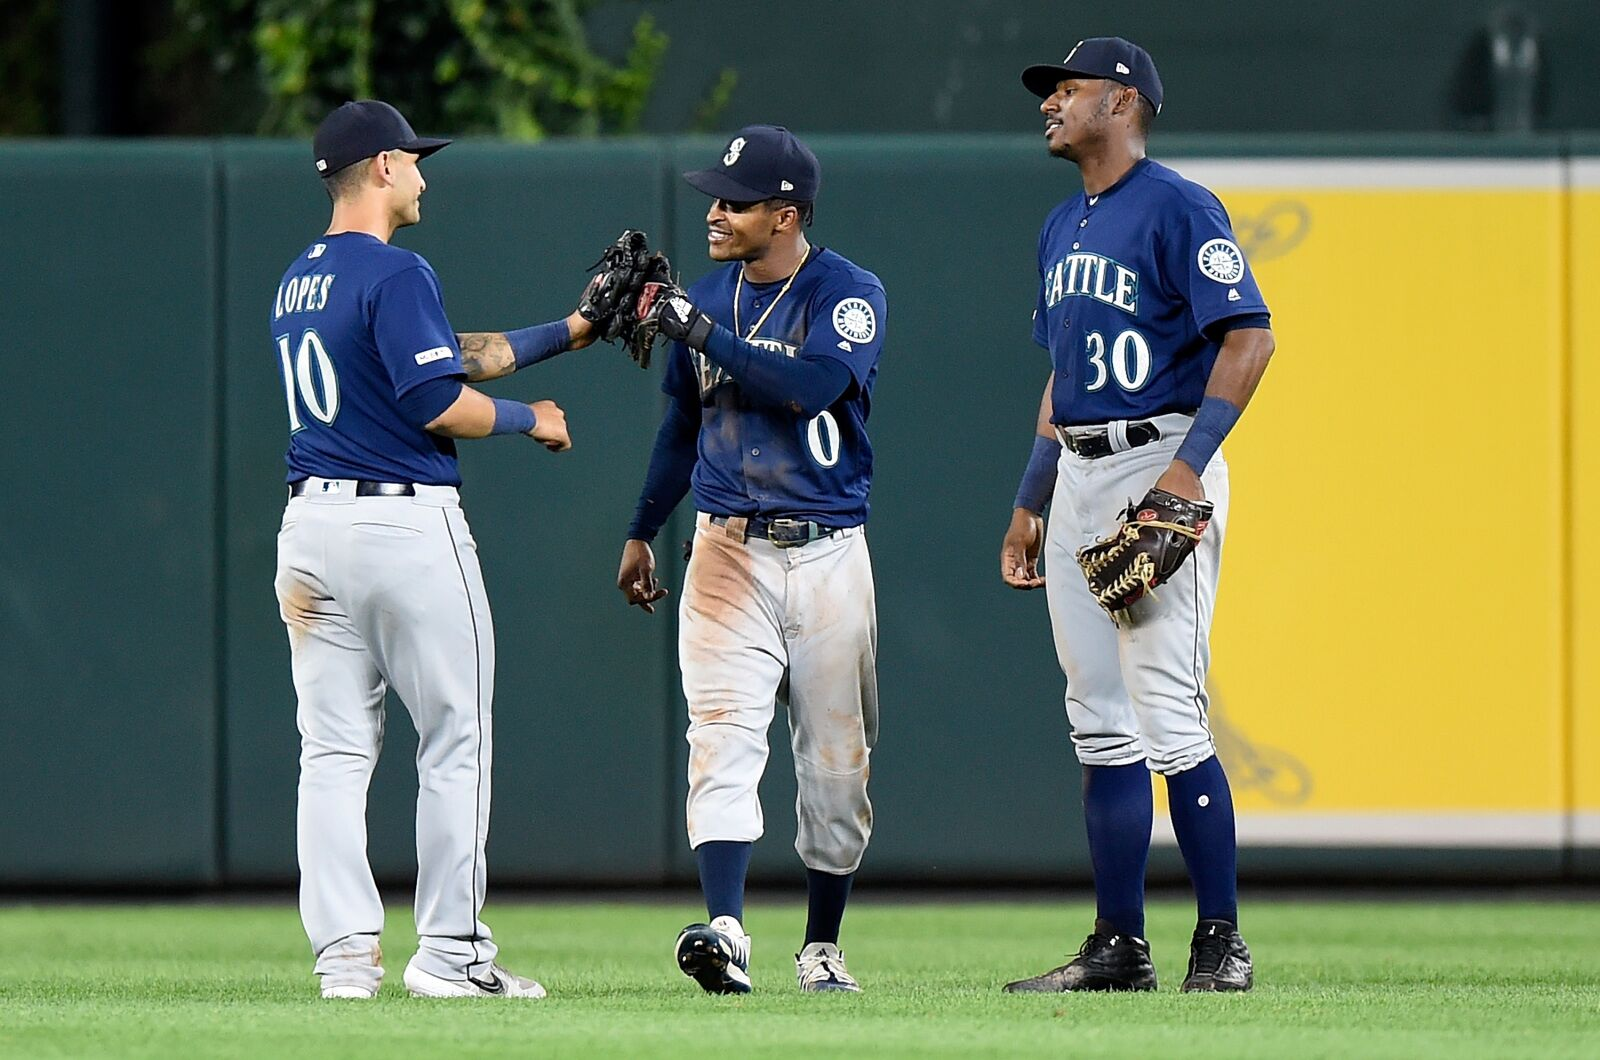 The Mariners have a logjam in the outfield